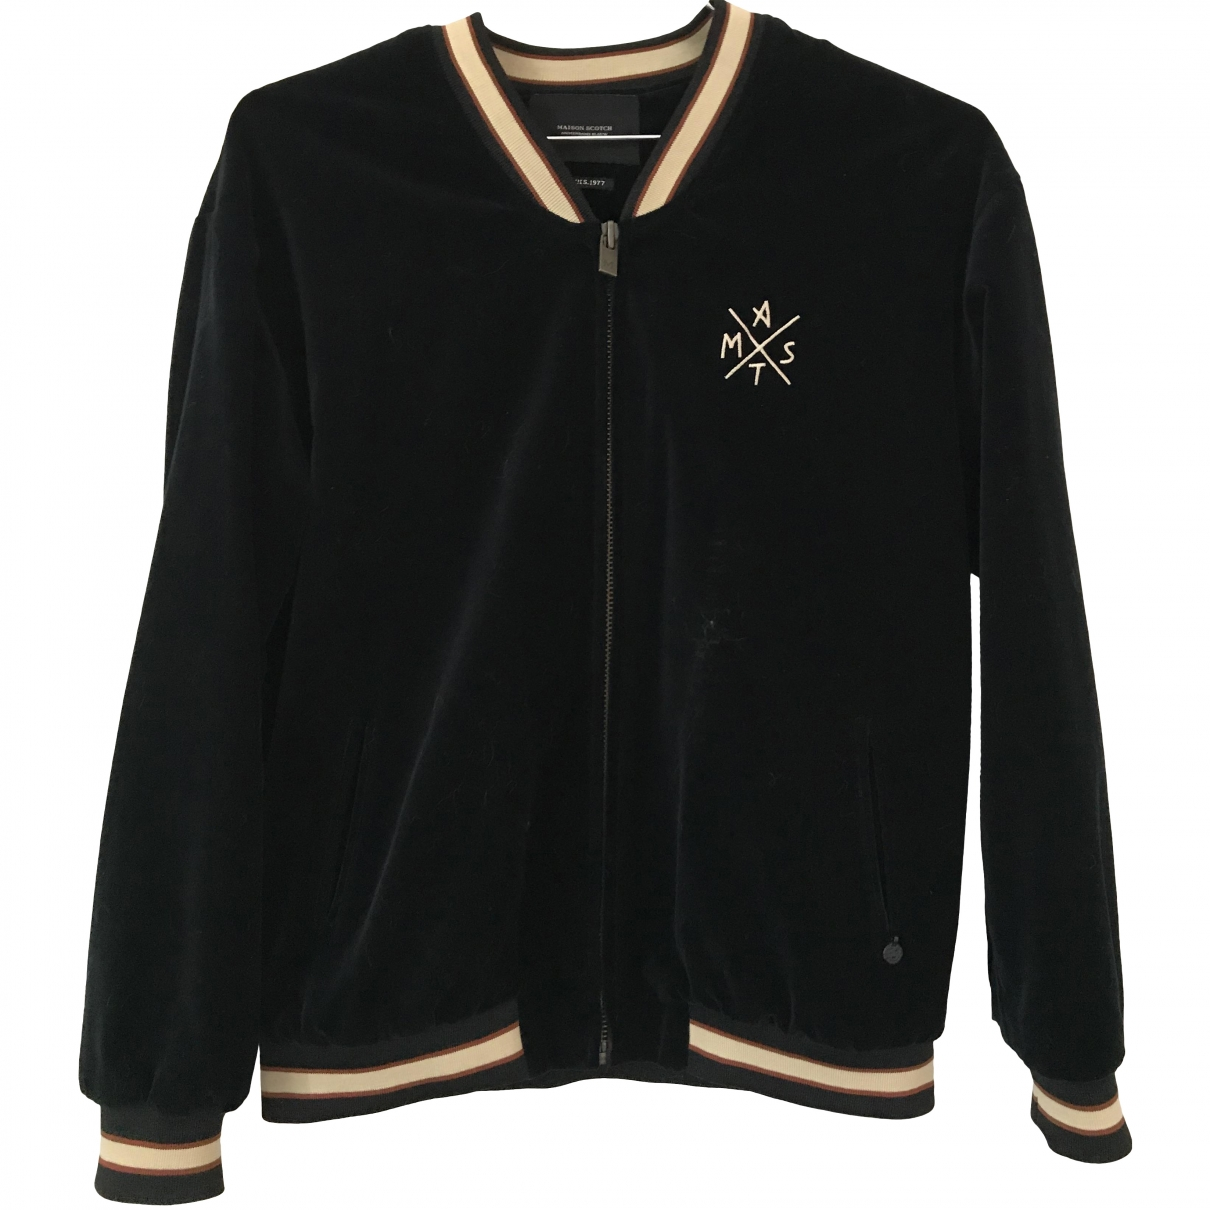 Maison Scotch \N Black Velvet jacket for Women M International